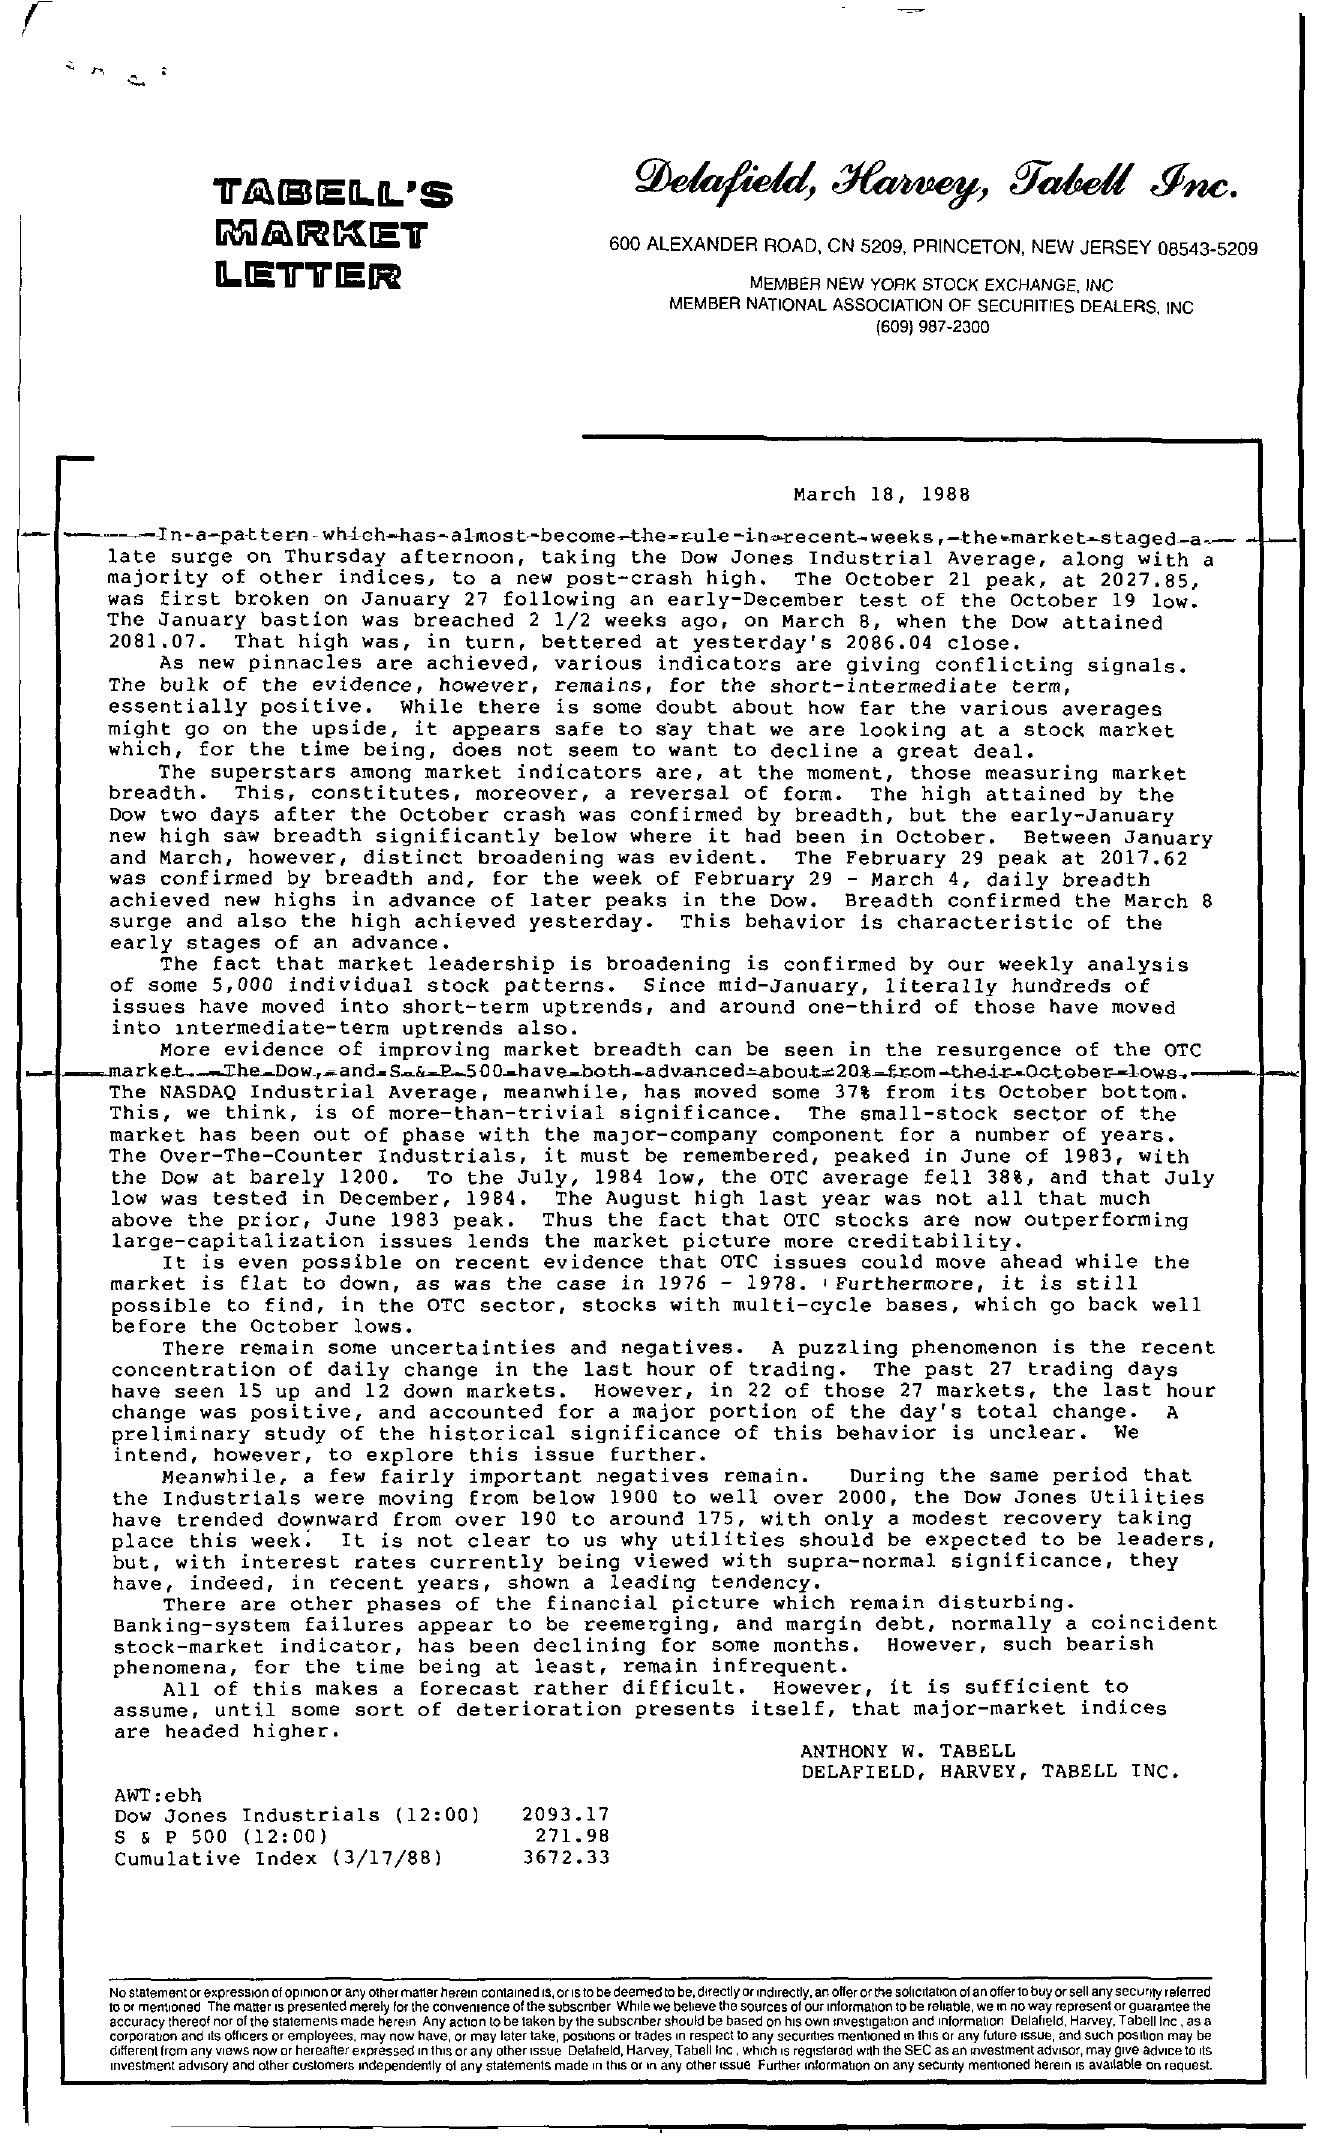 Tabell's Market Letter - March 18, 1988